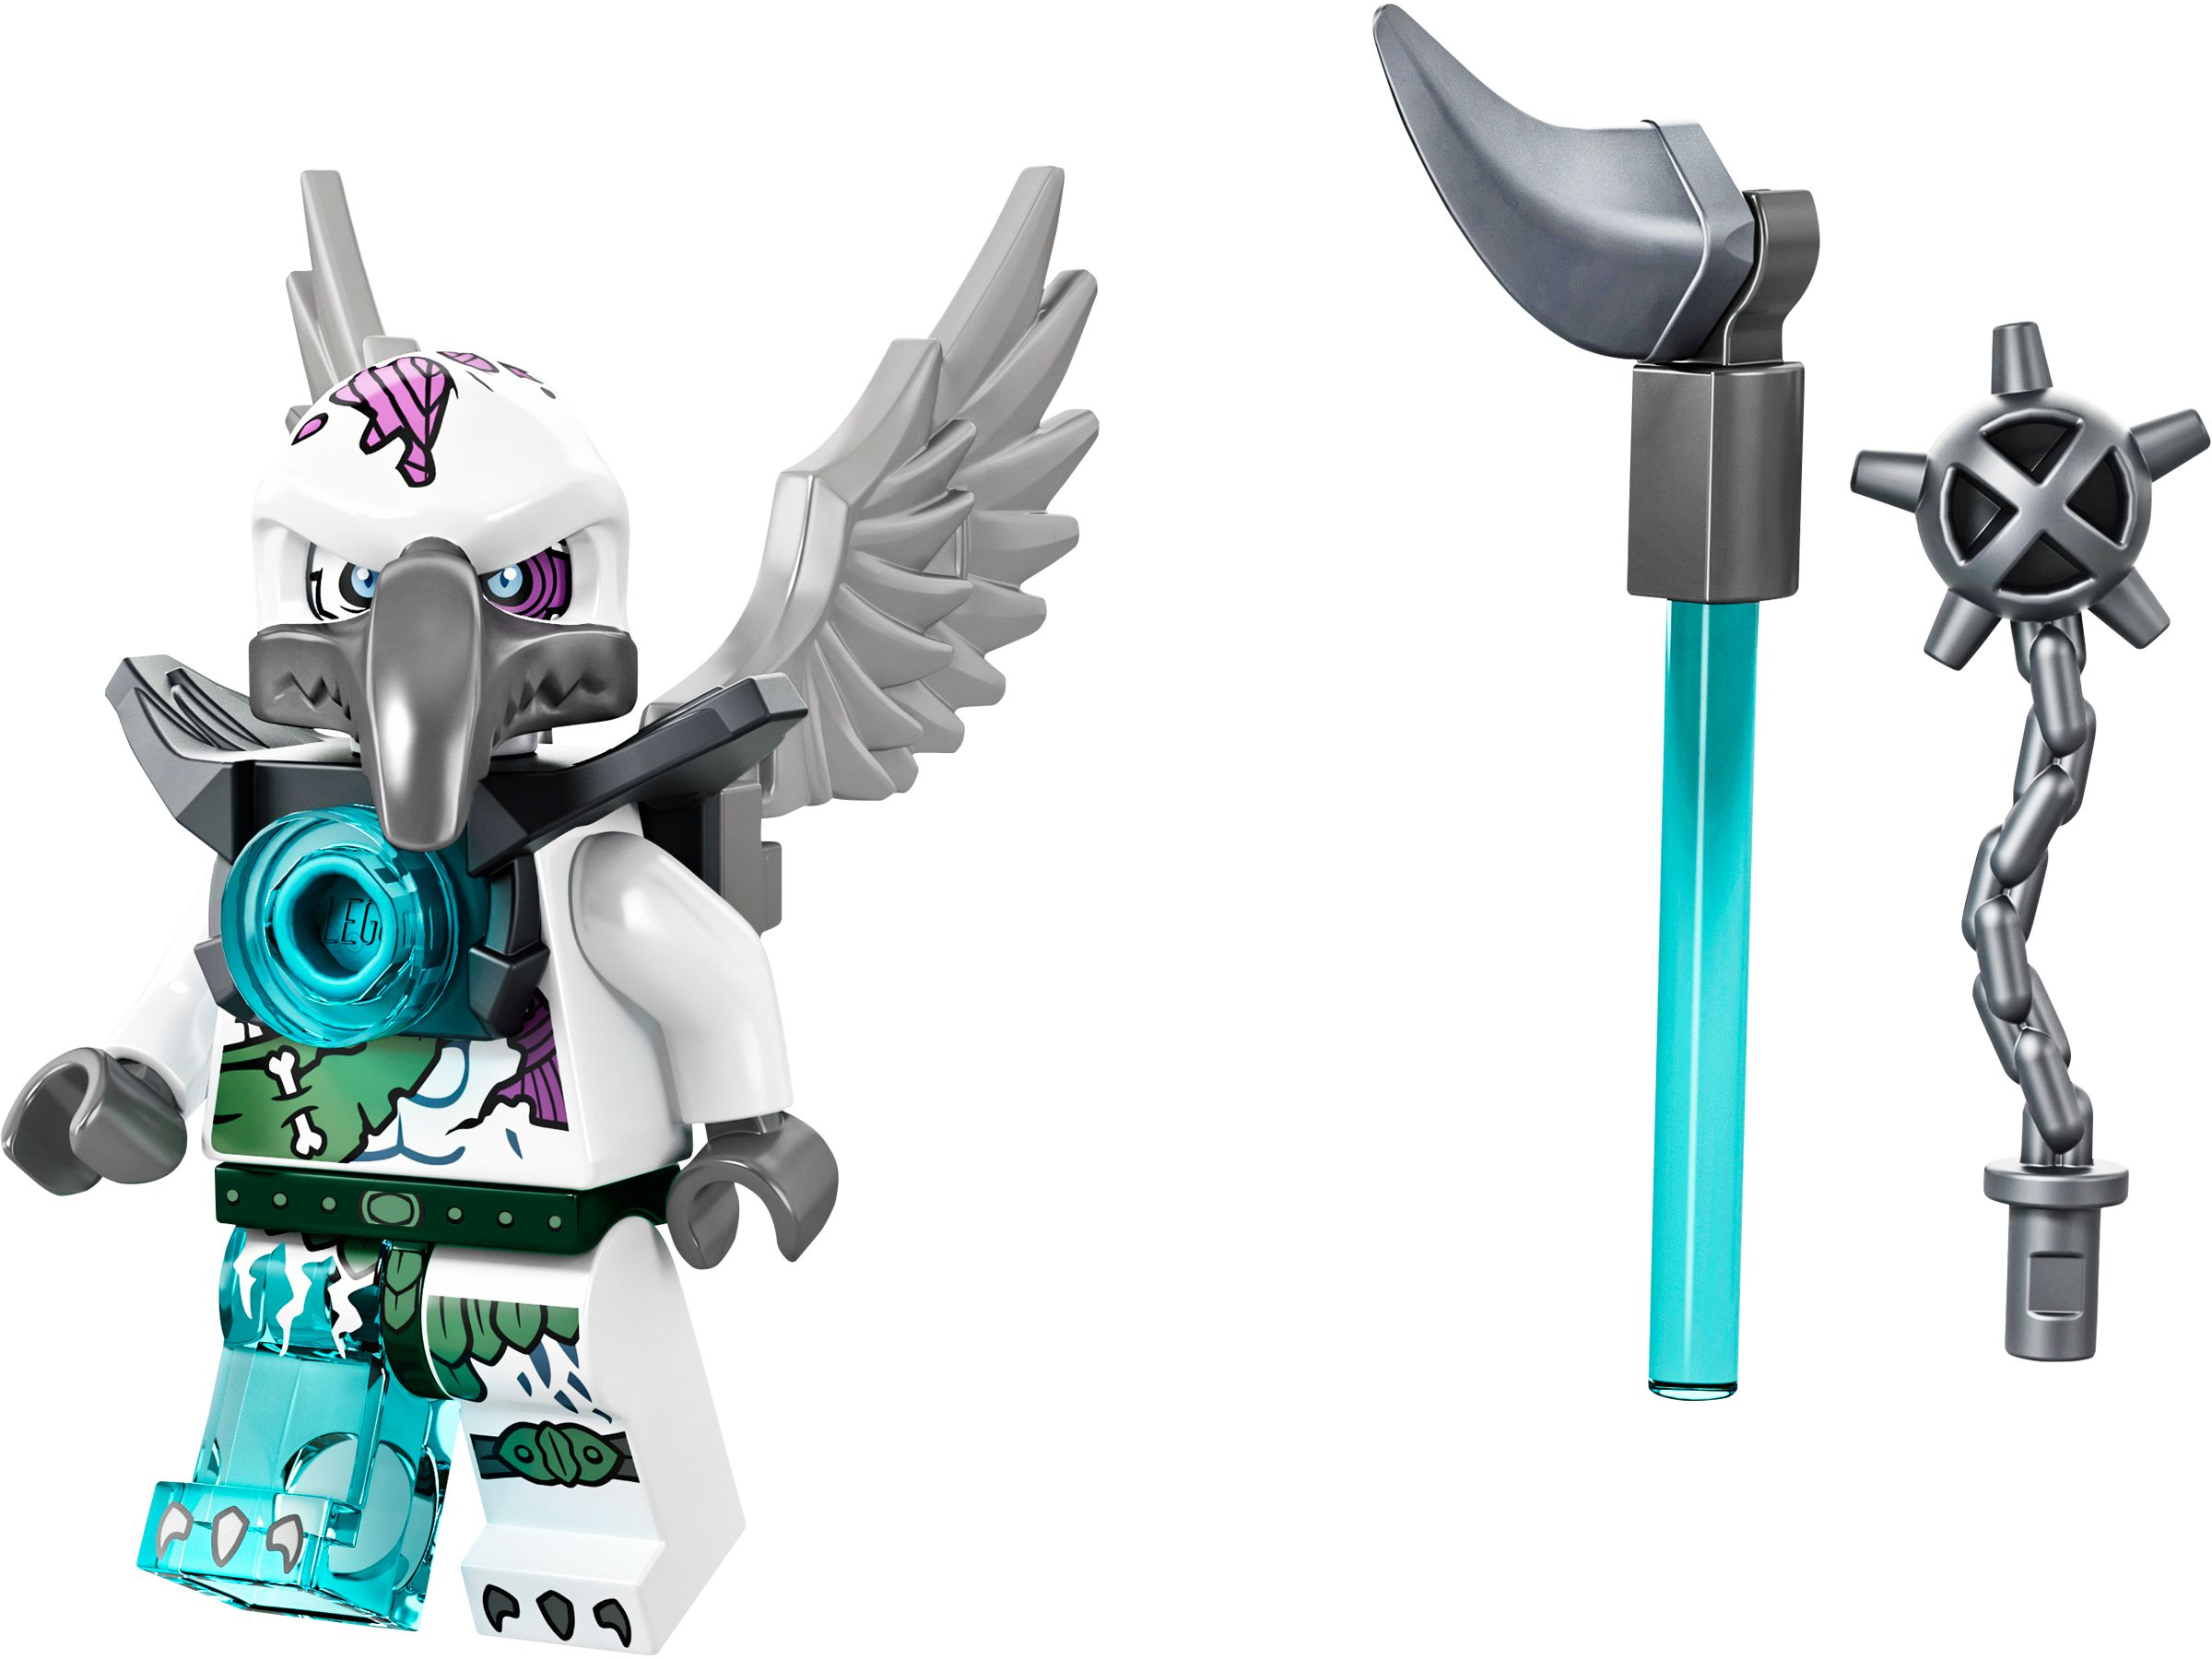 LEGO Legends Of Chima 70151 Eis-Stachel LEGO_70151_alt2.jpg